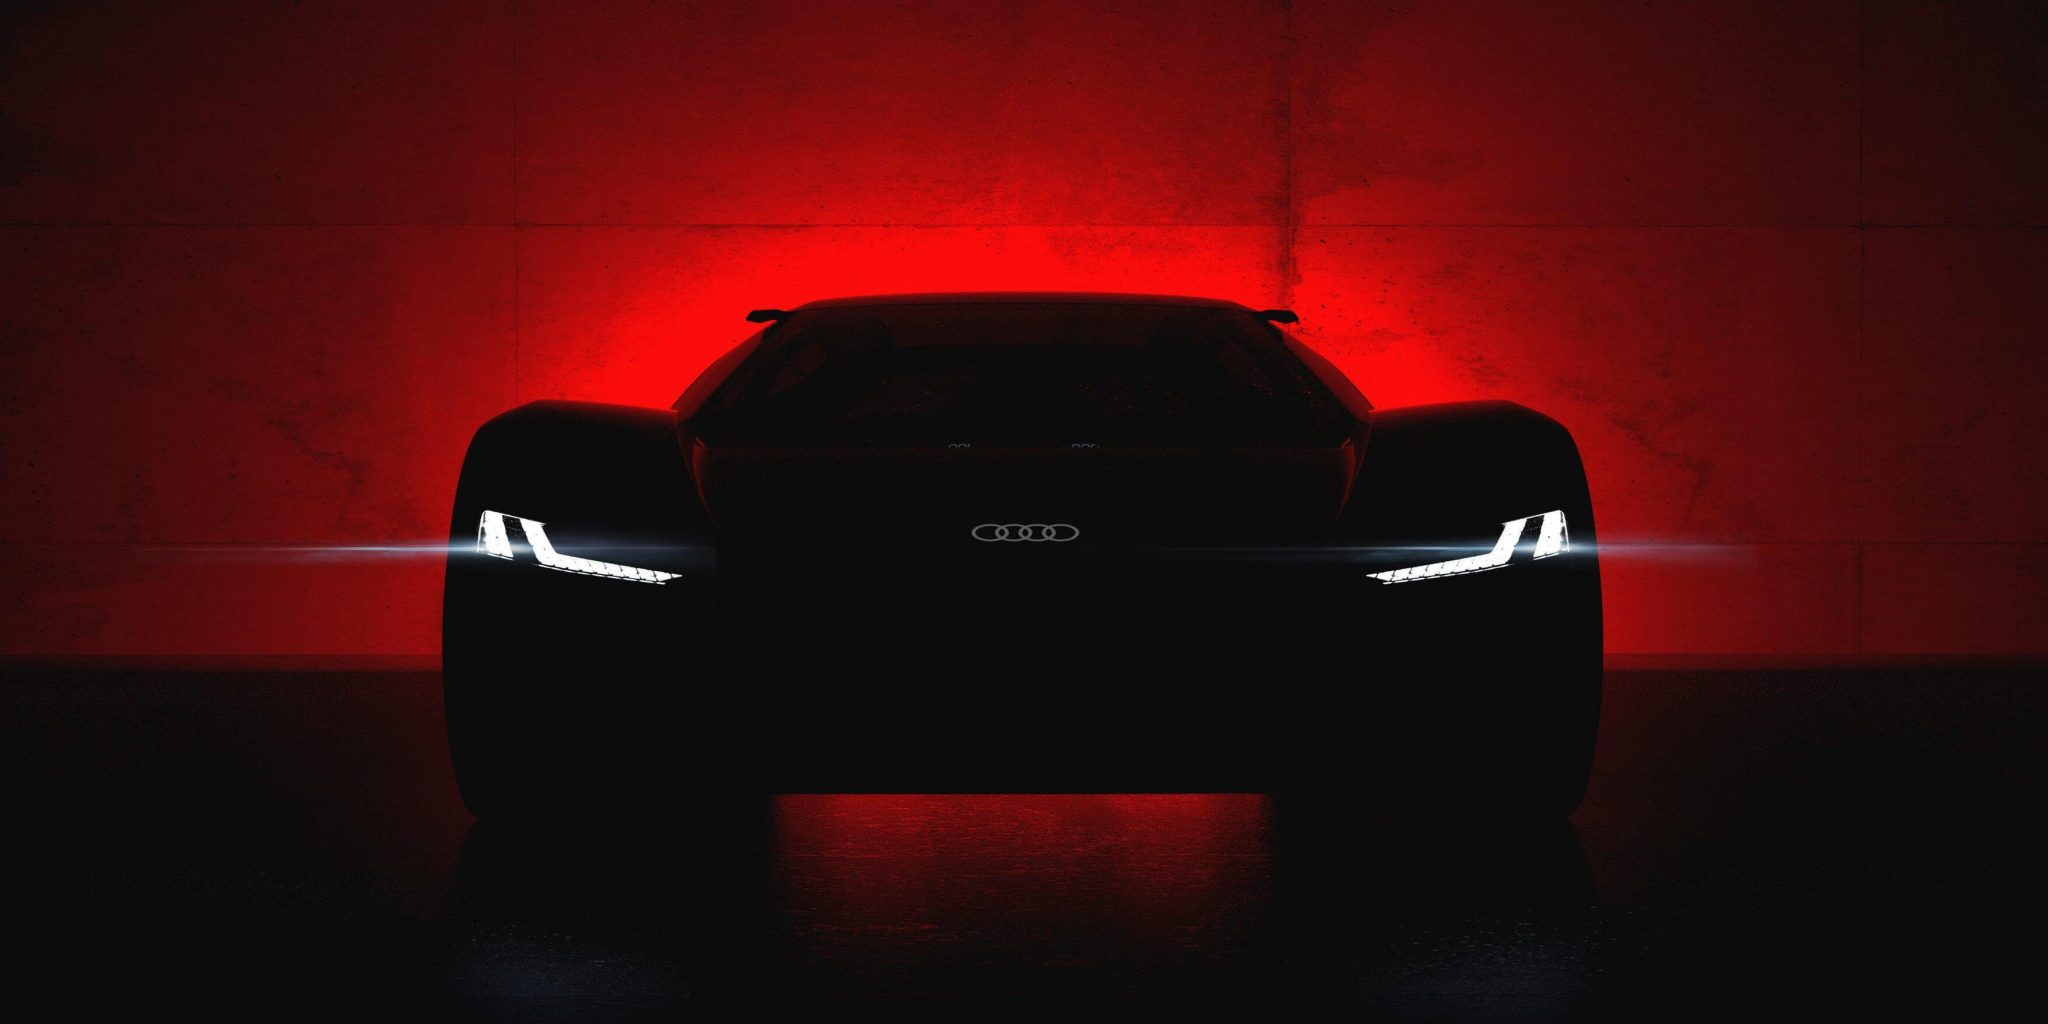 Audi showed the first teaser of the new supercar